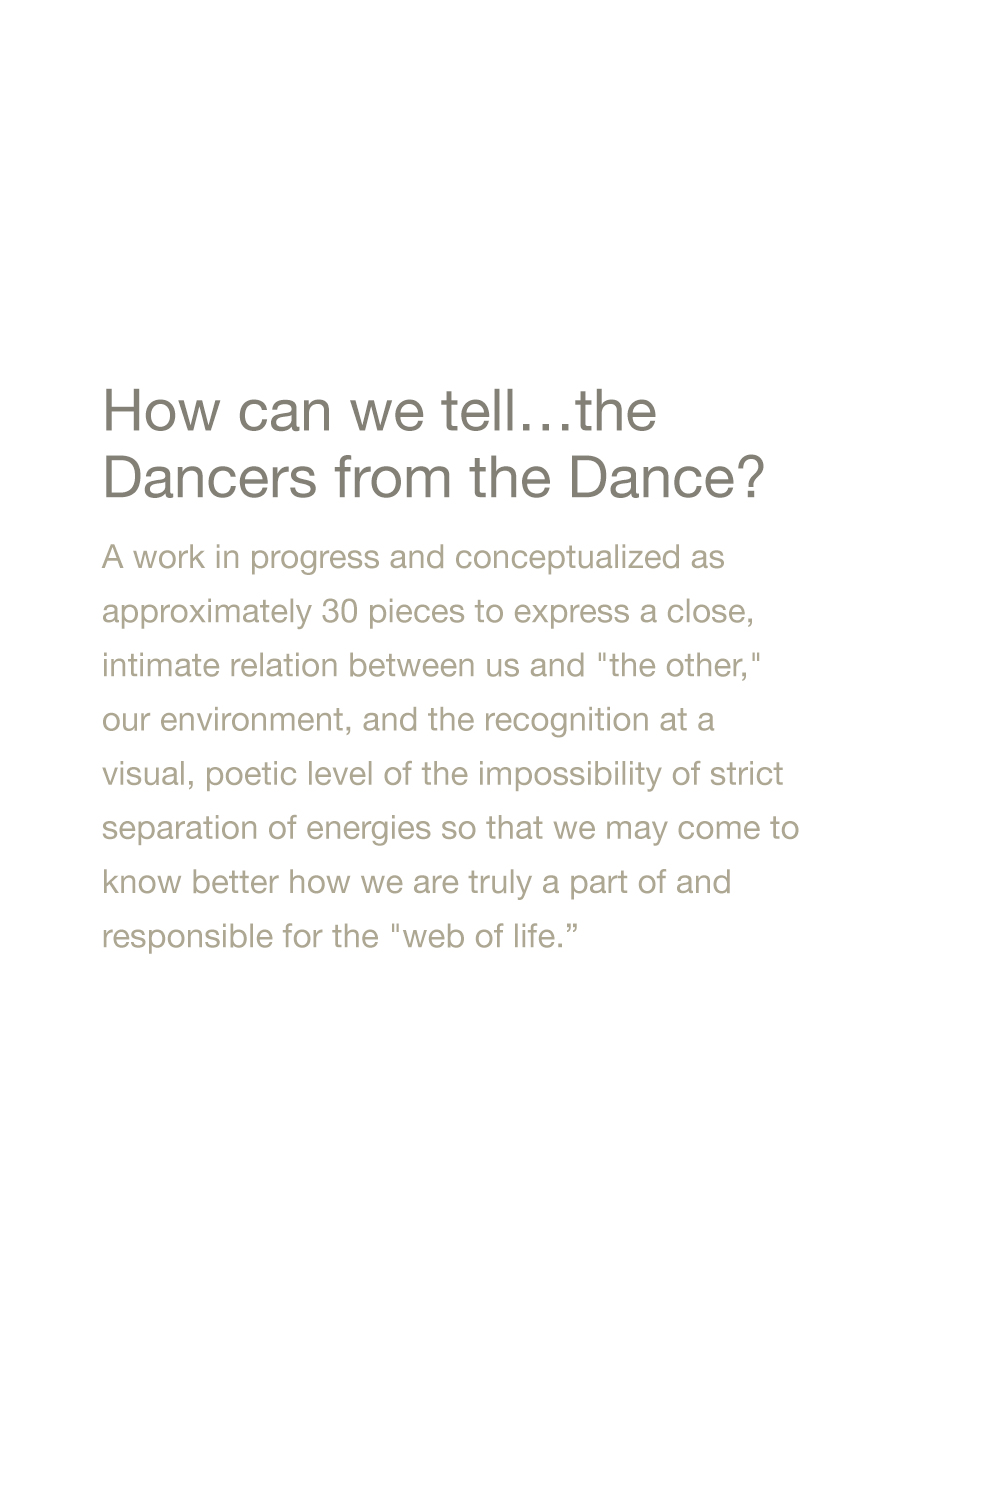 dancers-description-1000x1500.jpg